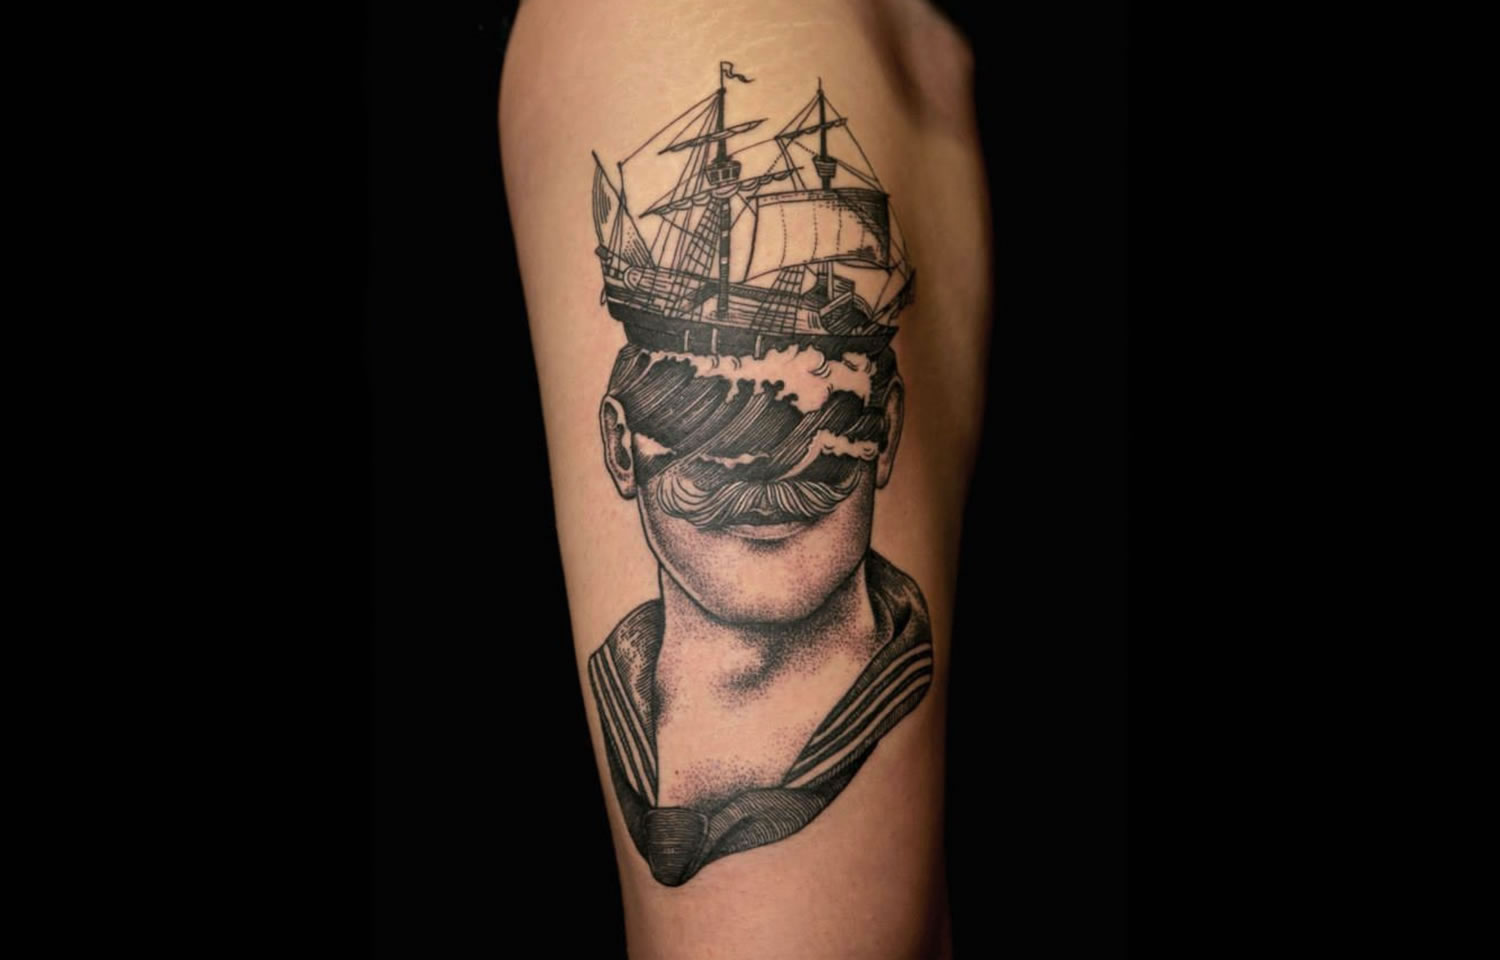 ship on head, tattoo of a moustache man